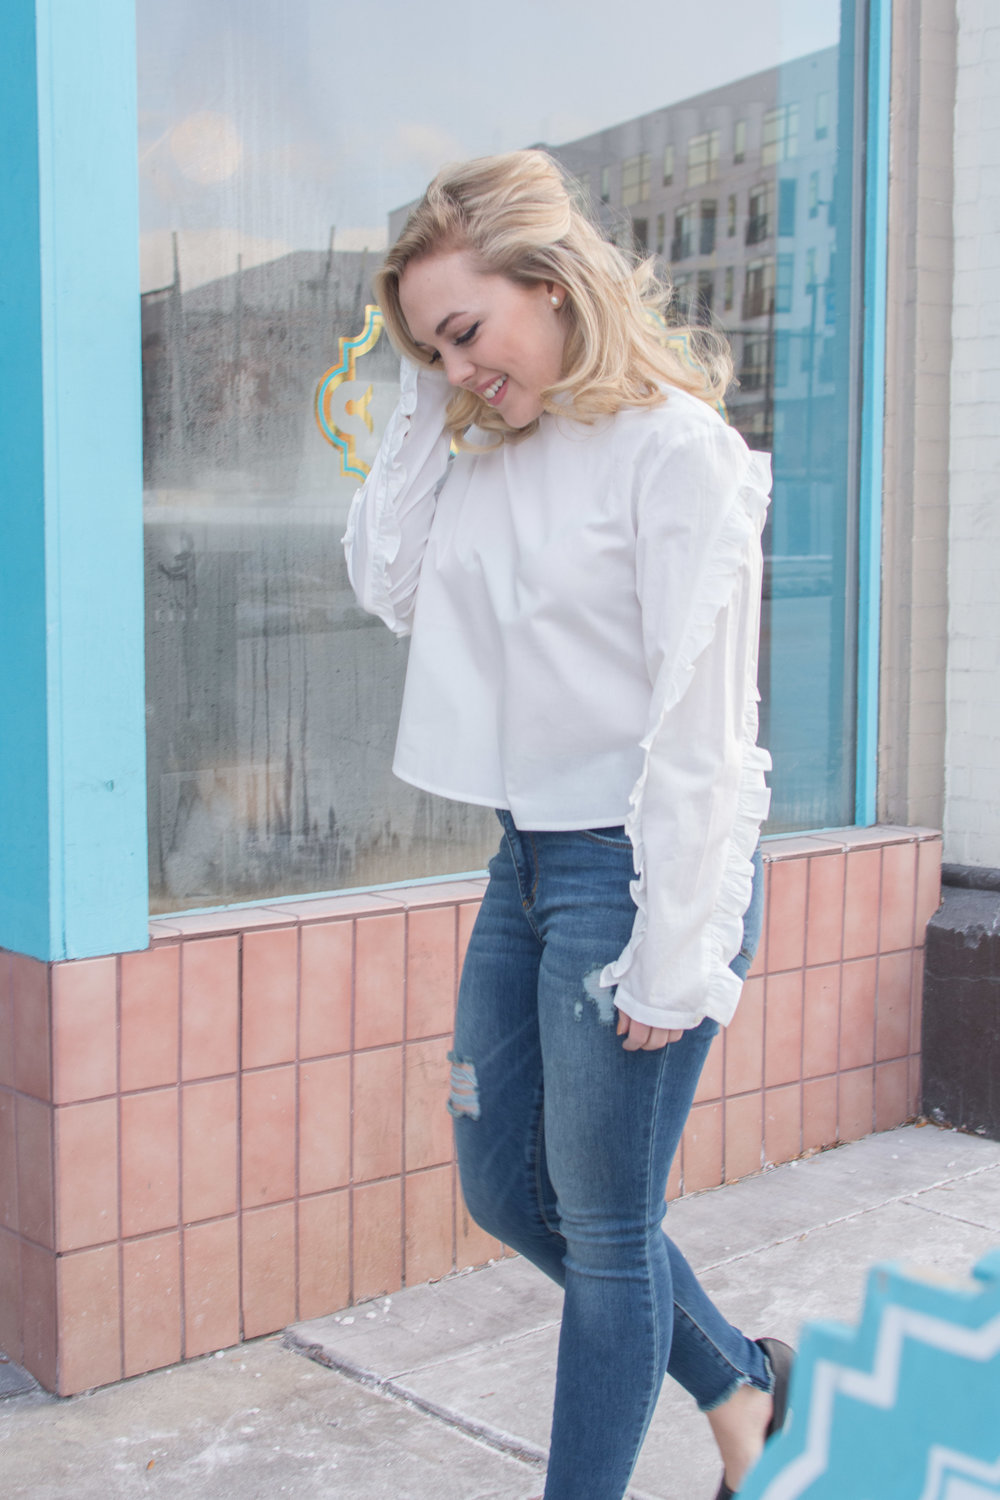 Avec les filles blouse (Sold out, but similar   here  ),   STS blue jeans  , vintage earrings, Kmart shoes (old)